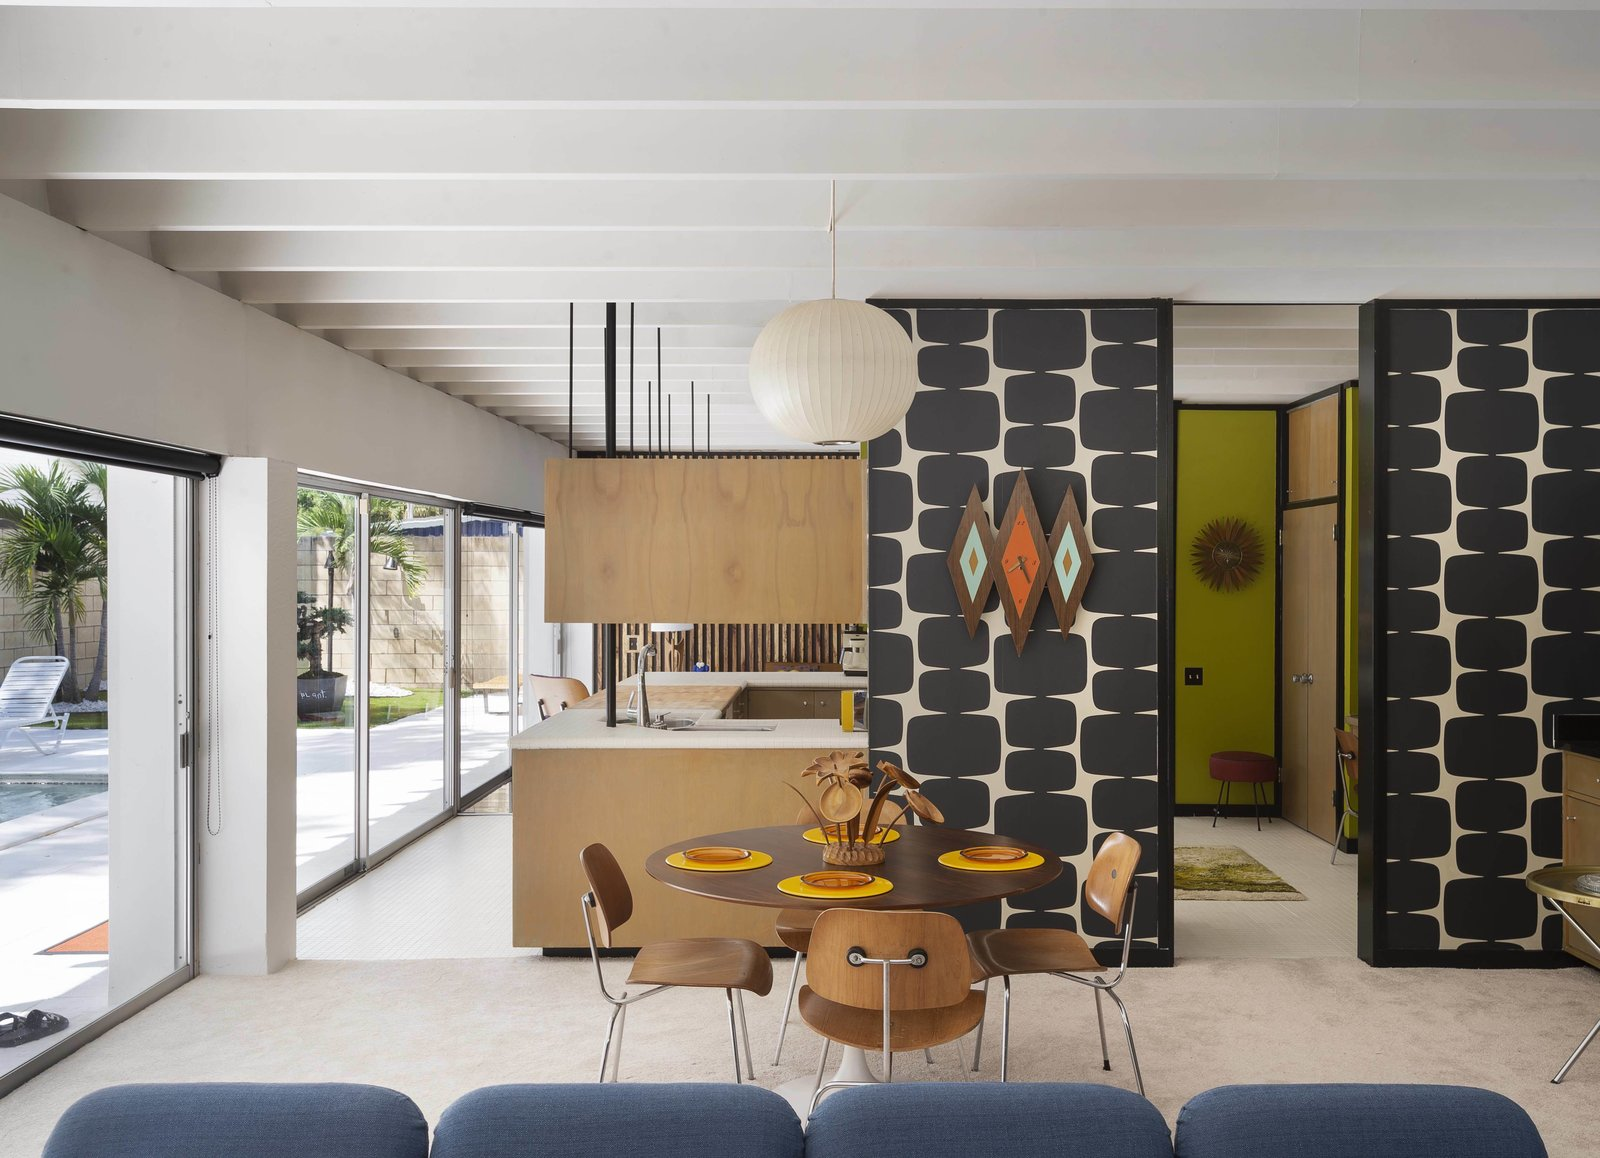 A Herman Miller chicklet sofa (foreground) and a Saarinen by Knoll dining table with Eames' DCM plywood chairs are clearly at home in this authentic midcentury modern abode.